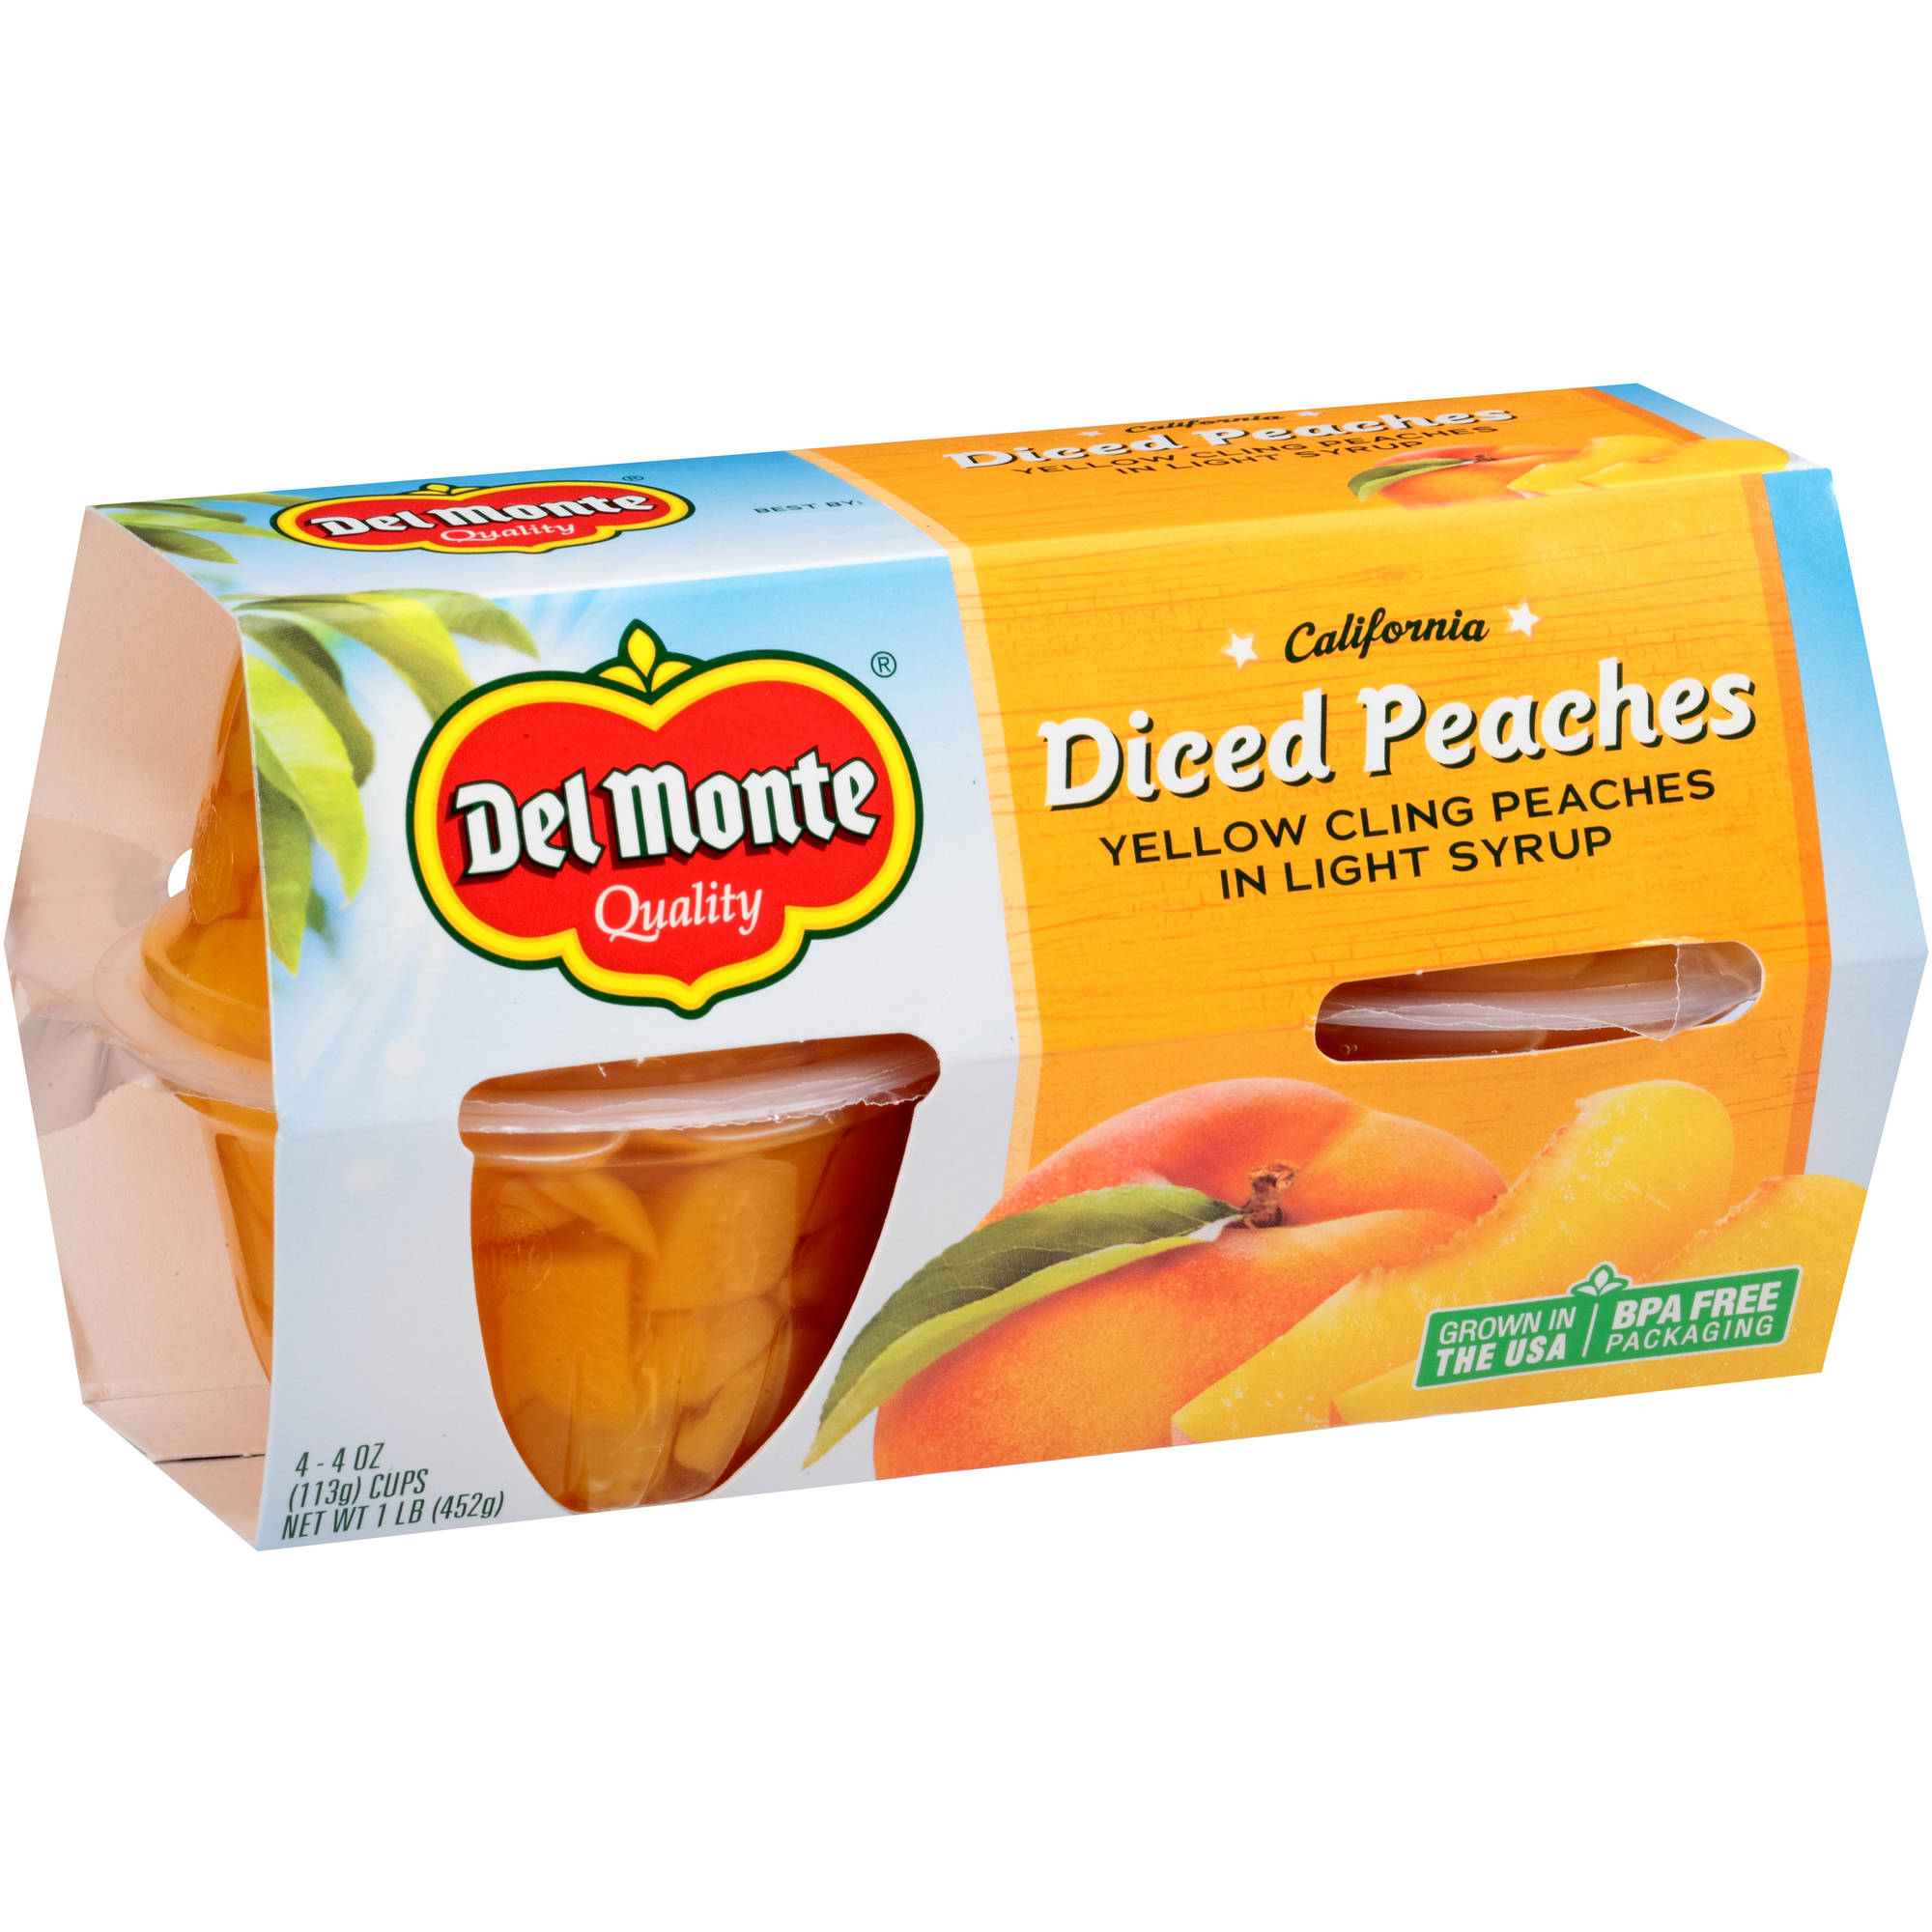 Del Monte California Diced Peaches Yellow Cling Peaches in Light Syrup, 4 oz, 4 count